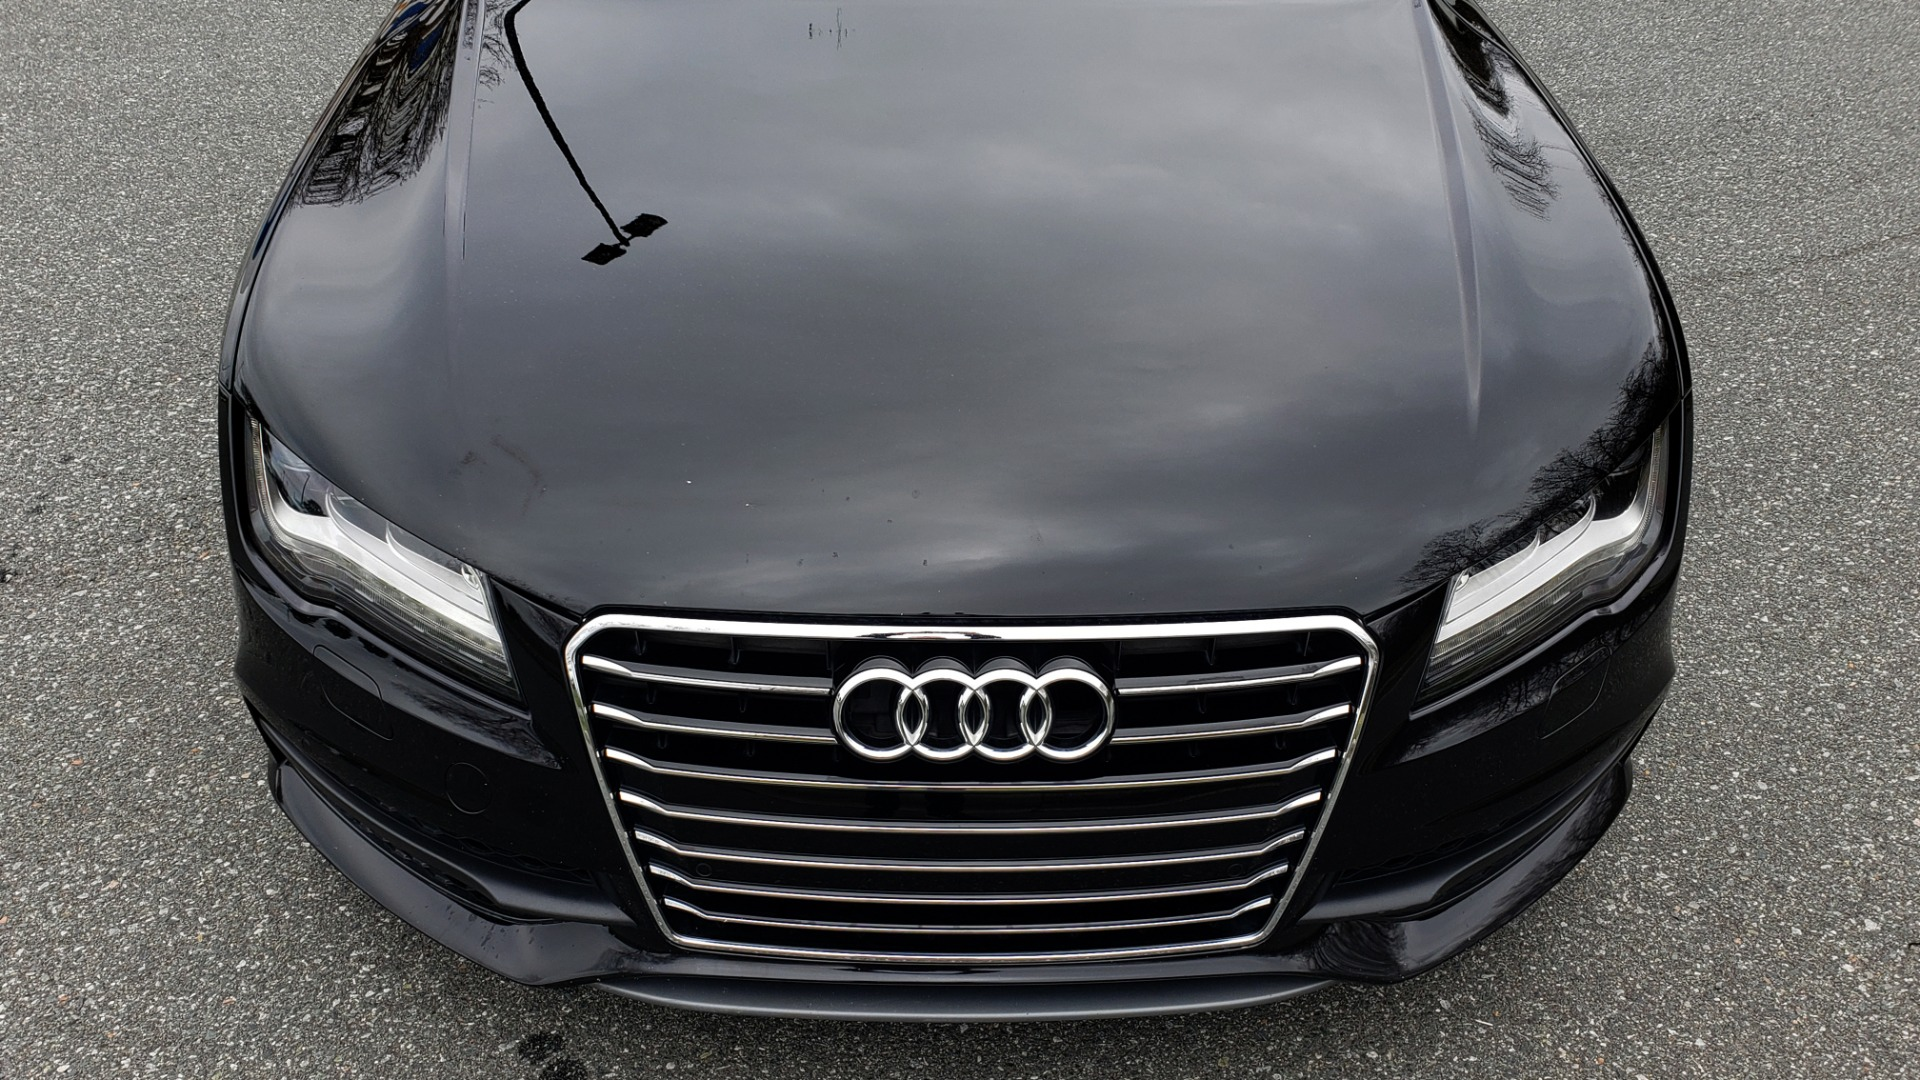 Used 2014 Audi A7 3.0 PRESTIGE / NAV / SUNROOF / BOSE / REARVIEW for sale Sold at Formula Imports in Charlotte NC 28227 16